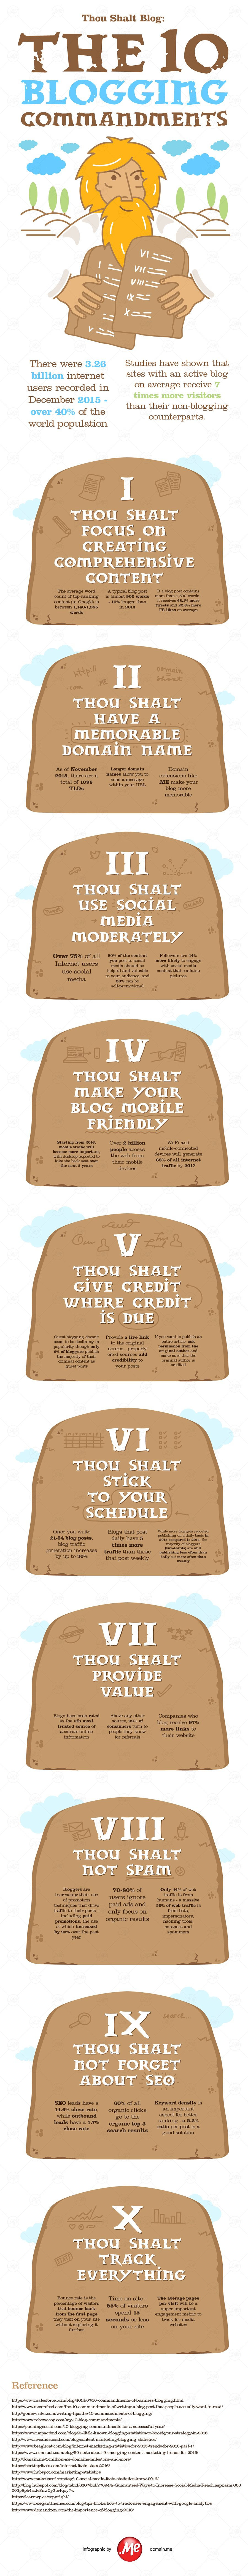 Lincoln NE Web Design and Development - The-10-Commandments-of-Blogging-Every-Business-Should-Abide-By-1